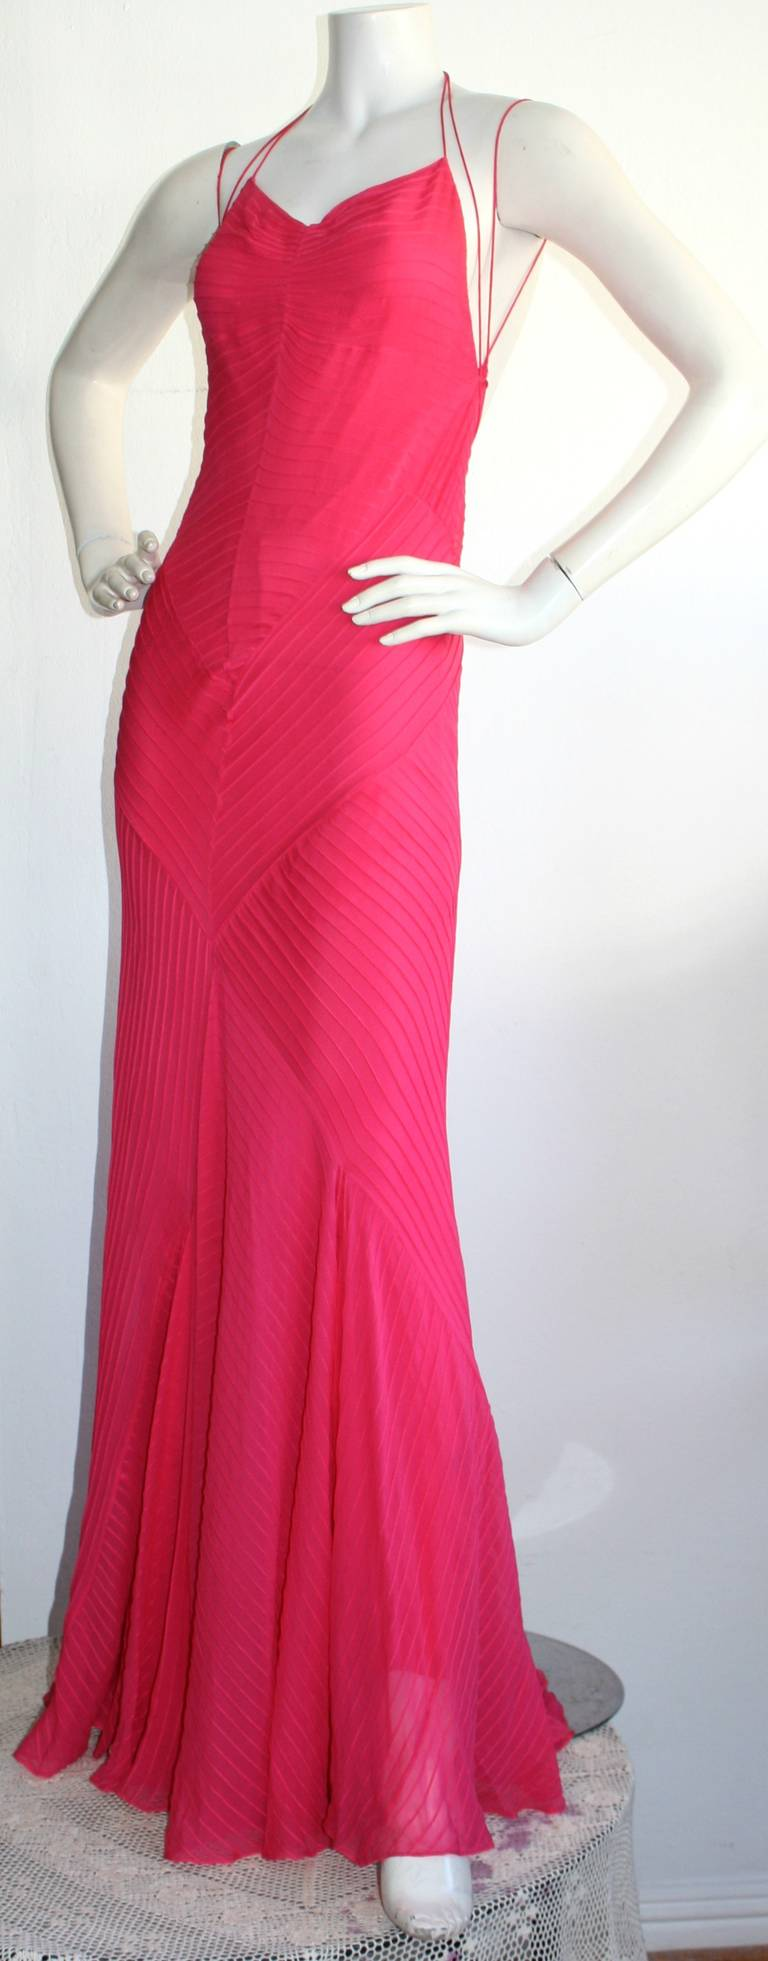 Stunning Vintage Ralph Lauren Purple Label Hot Pink Mermaid Gown ...